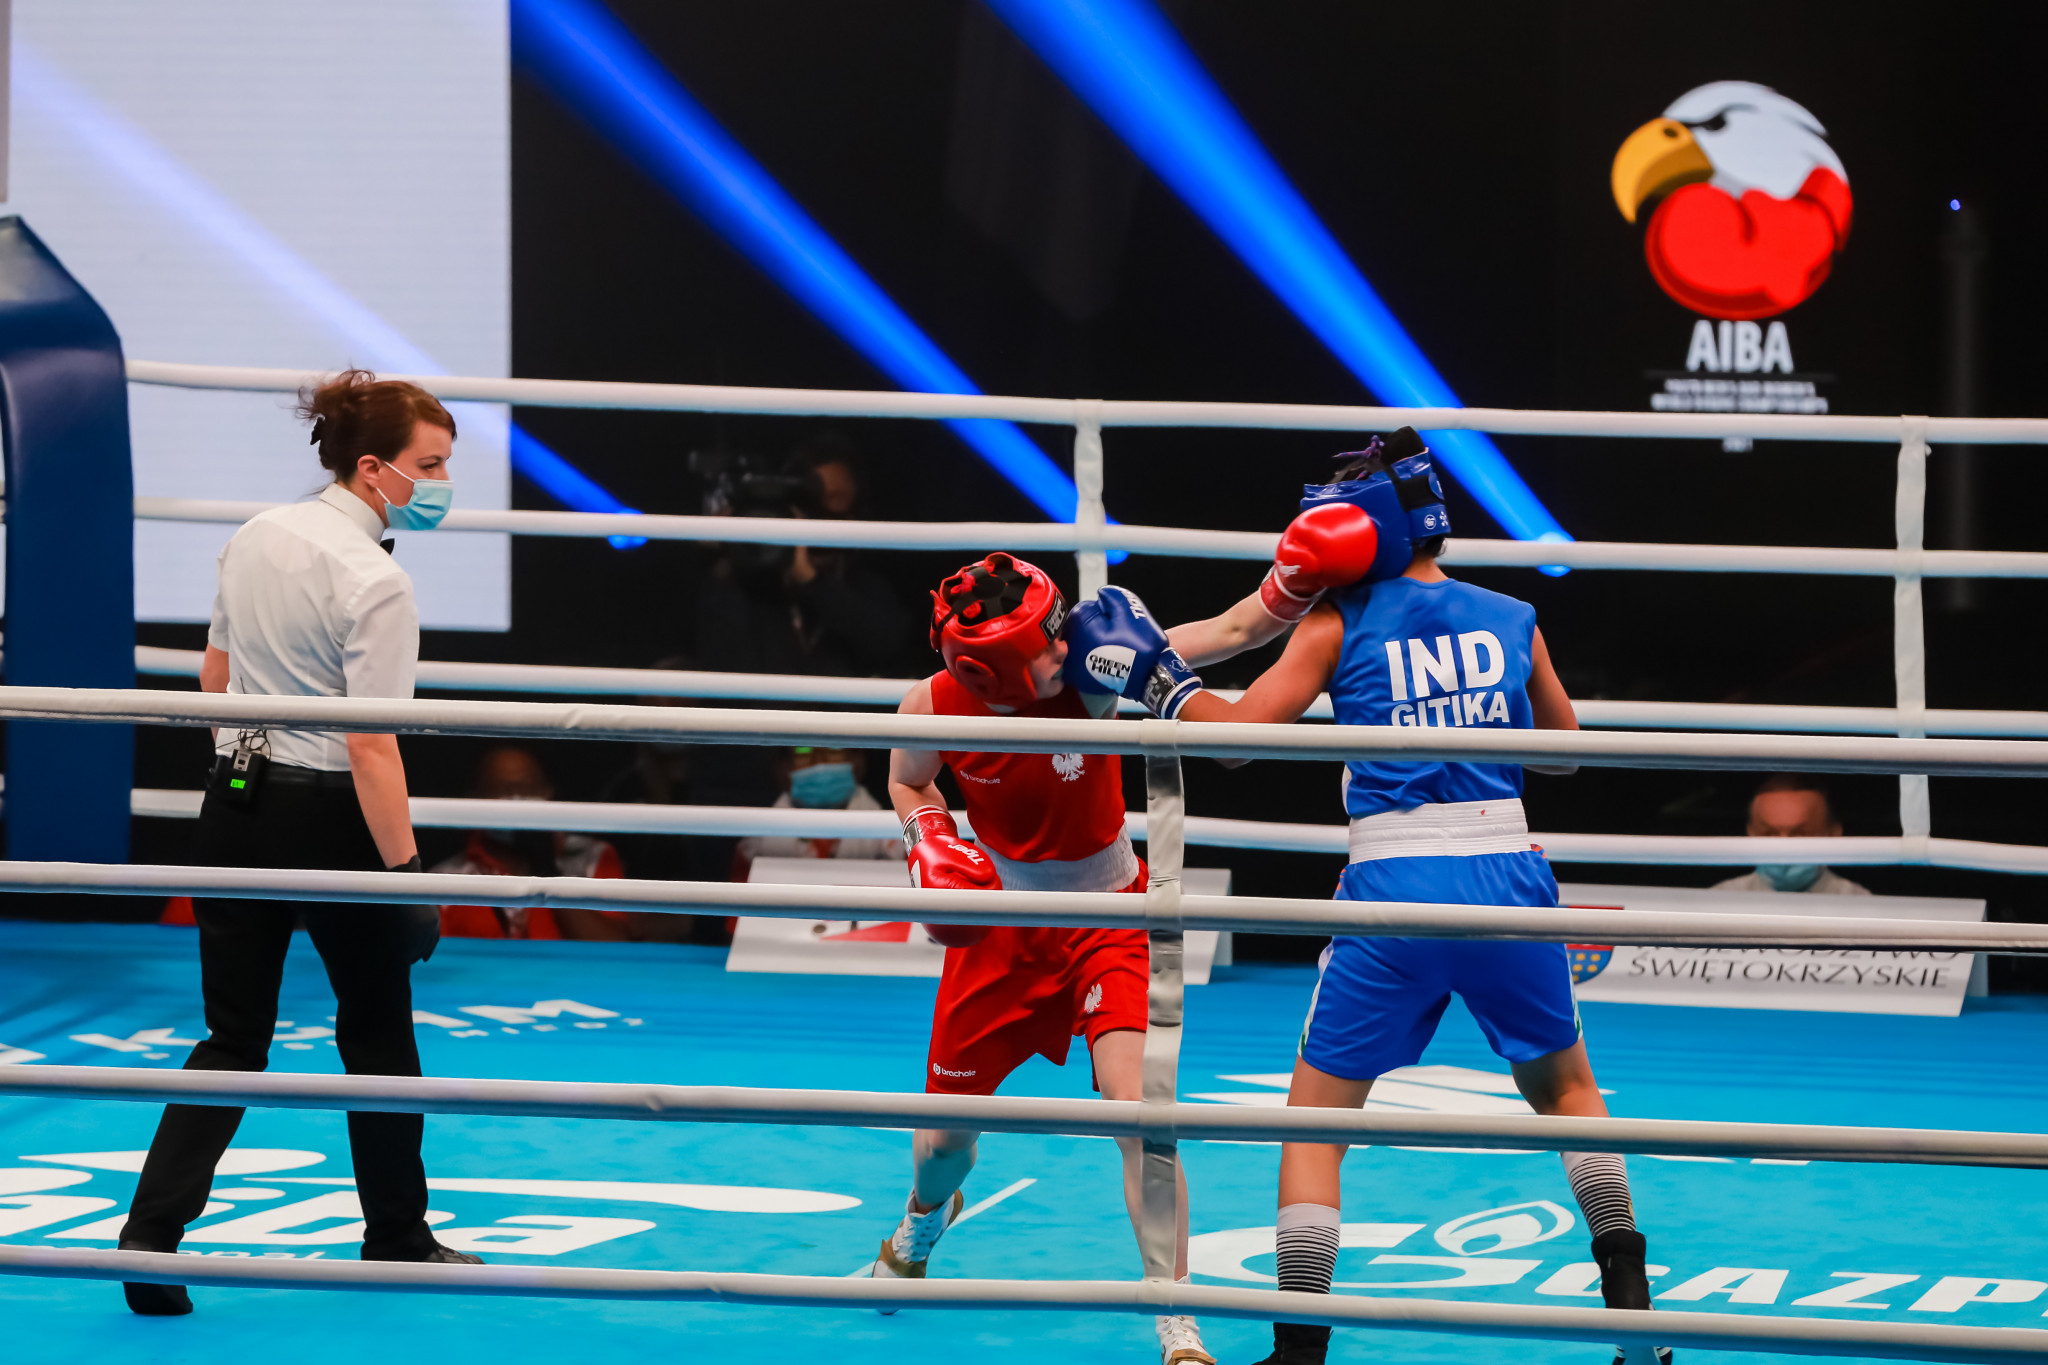 India claim seven gold medals in women's finals at AIBA Youth World Championships